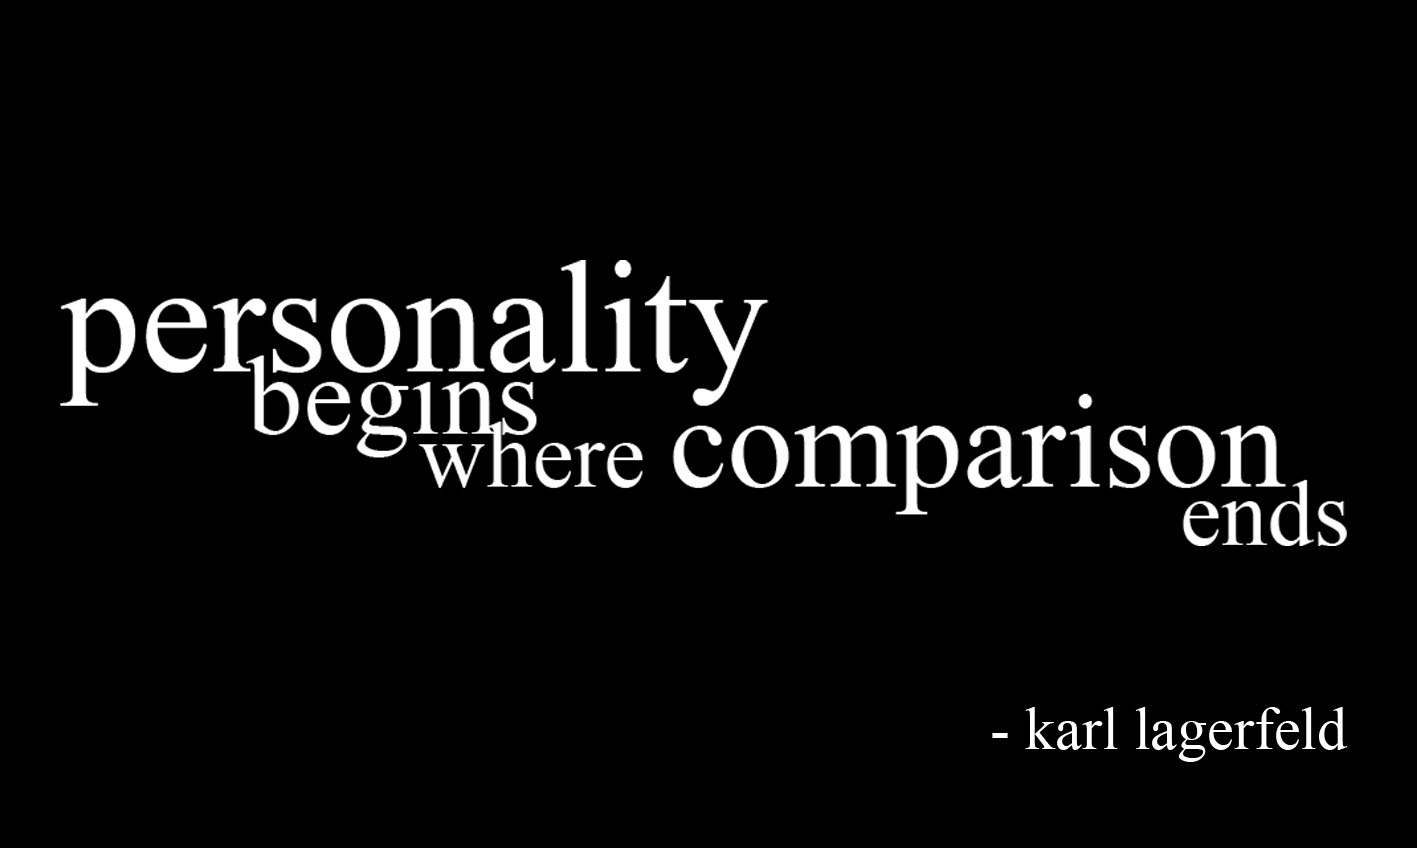 personality-begins-where-comparison-ends